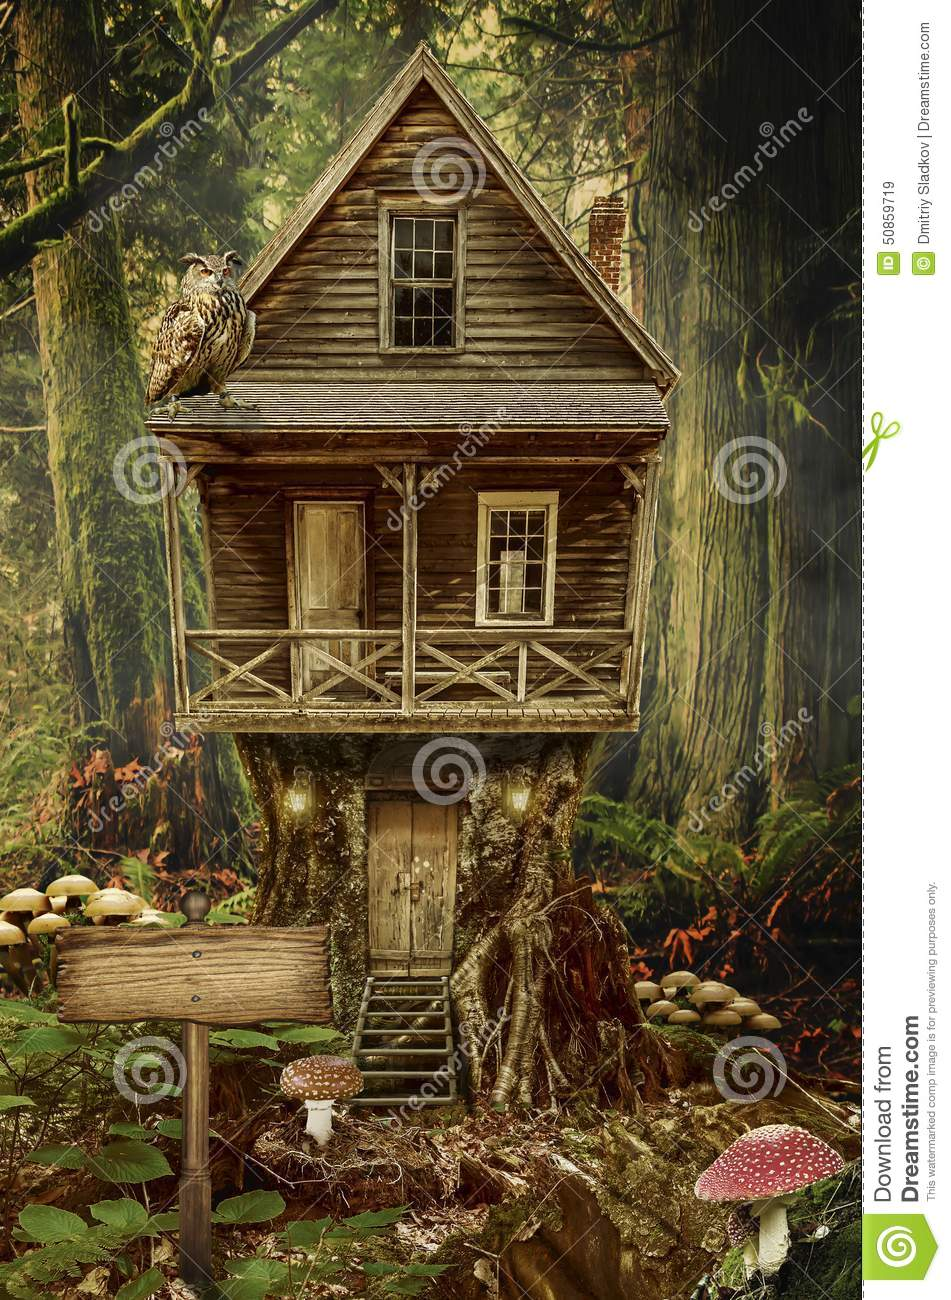 Series fairy house stump a fictional illustration of house and the